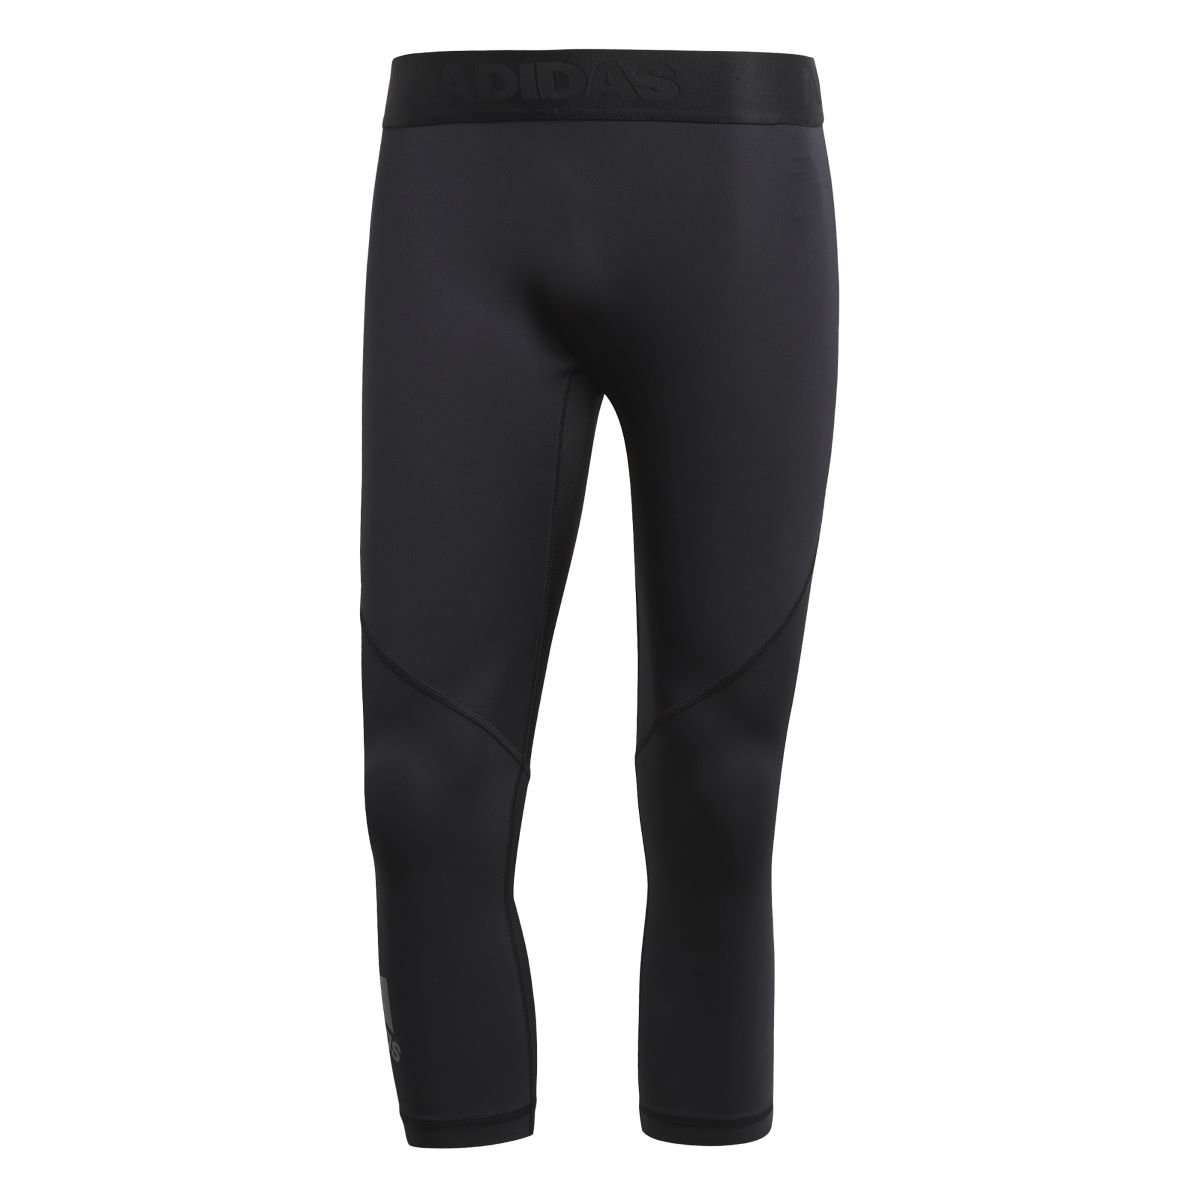 Corsaire adidas Alphaskin Sport - M BLACK Sous-vêtements compression